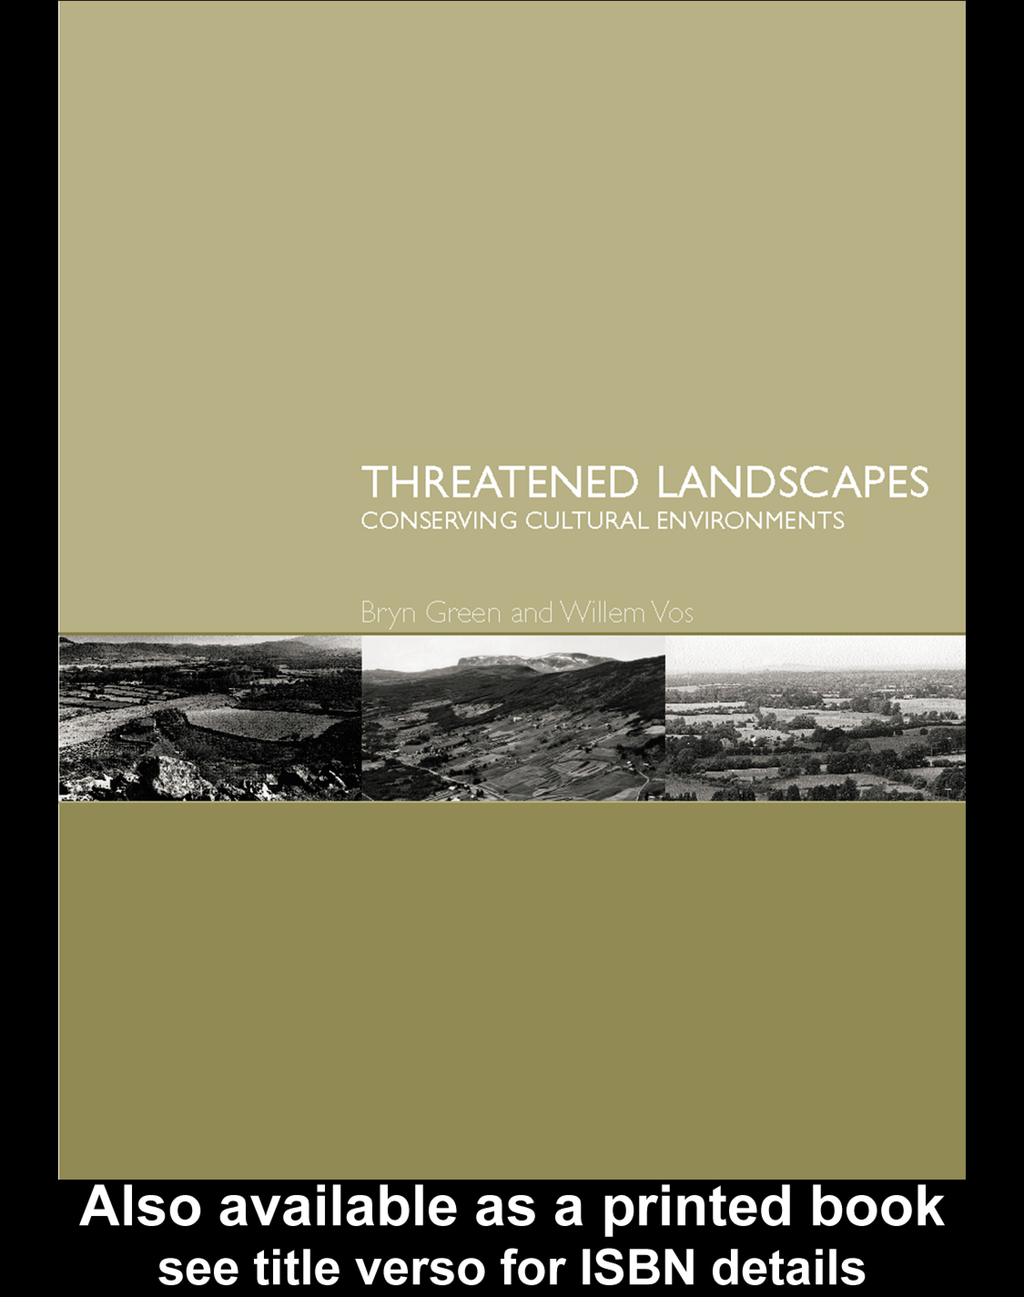 Threatened Landscapes Conserving Cultural Environments